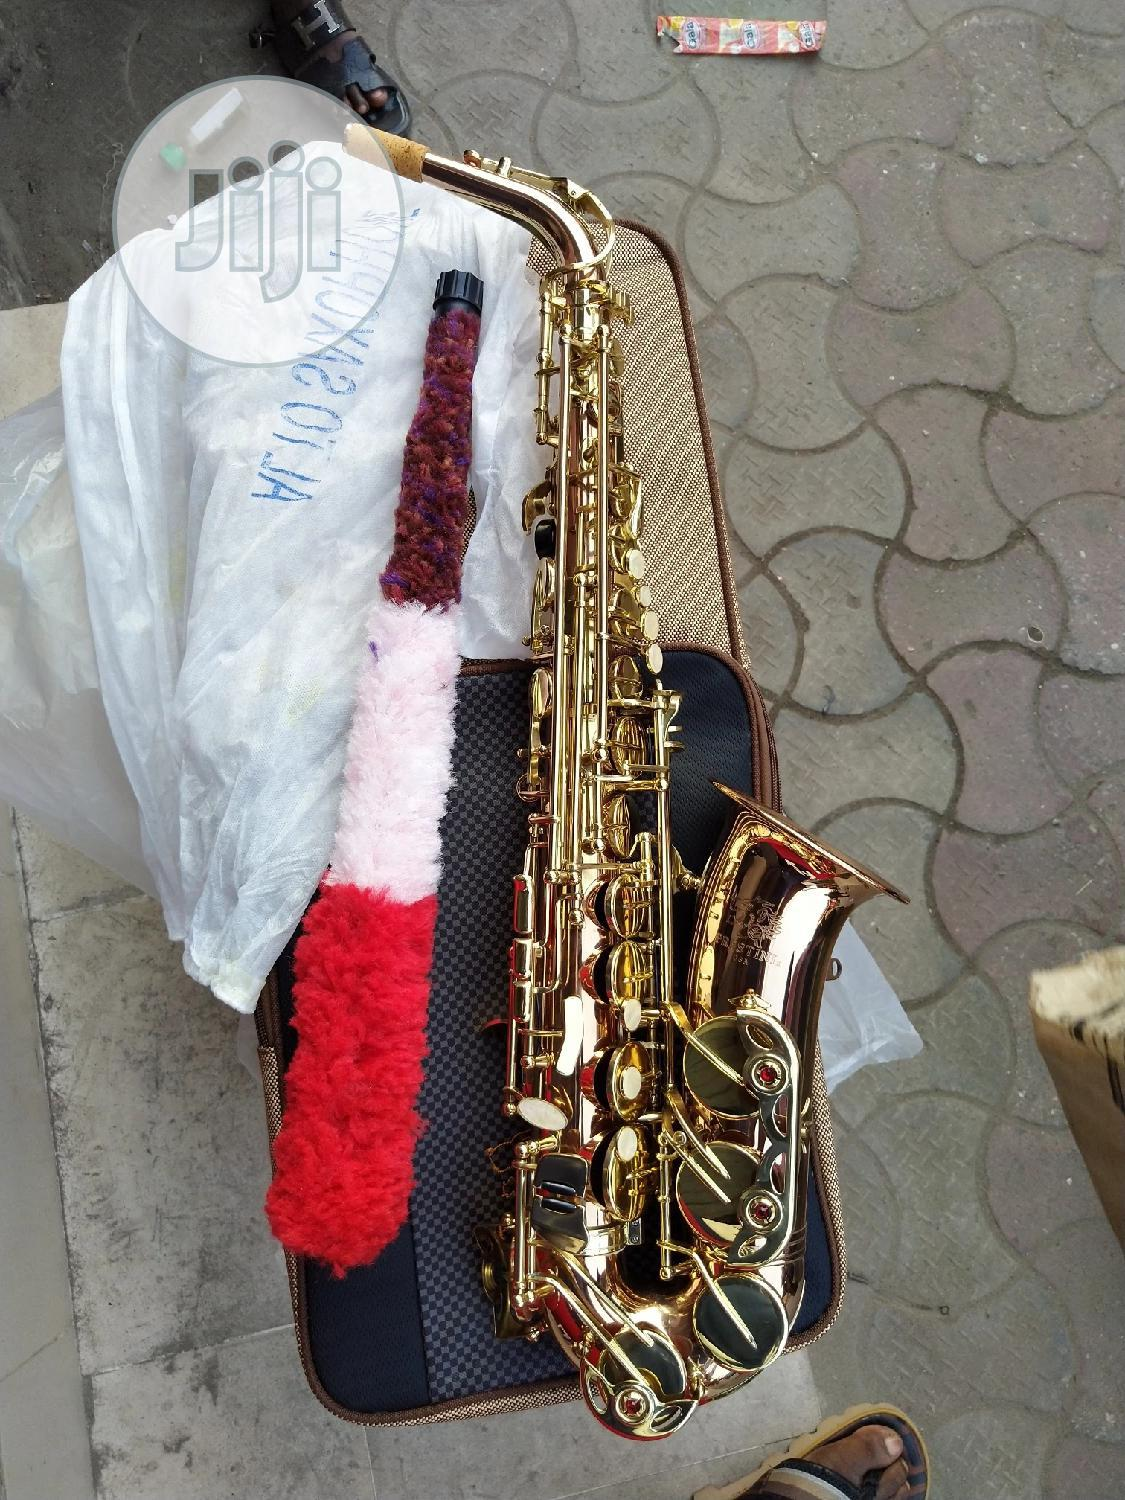 Prestini Professional Alto Saxophone | Musical Instruments & Gear for sale in Ojo, Lagos State, Nigeria